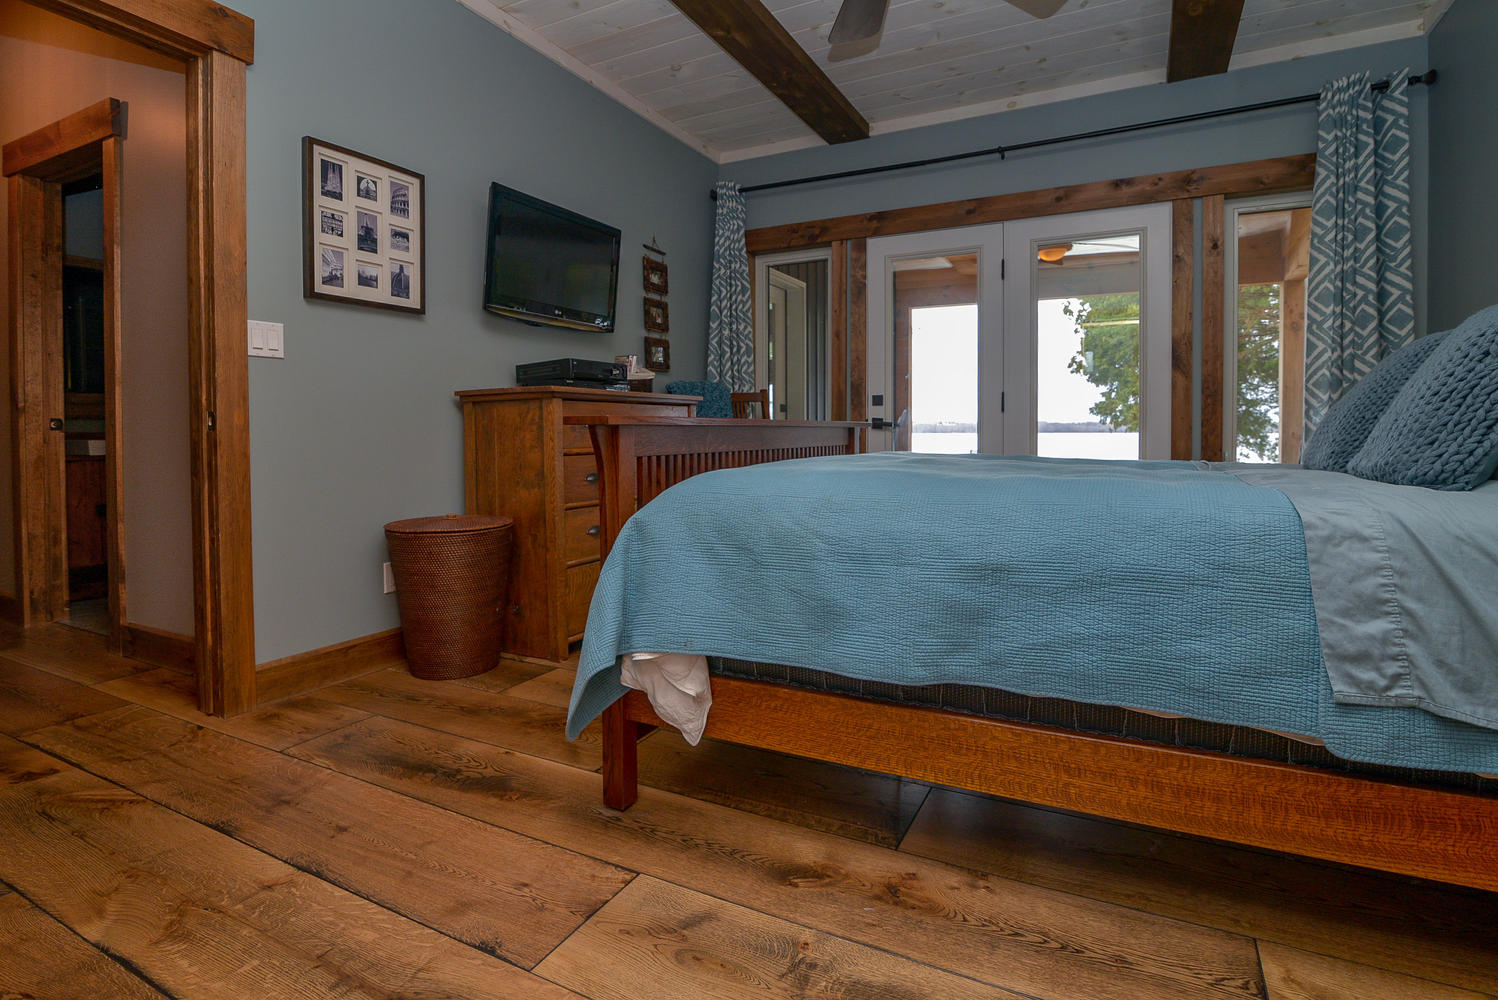 Pictures of Wide plank white oak flooring by the leader in wide plank flooring